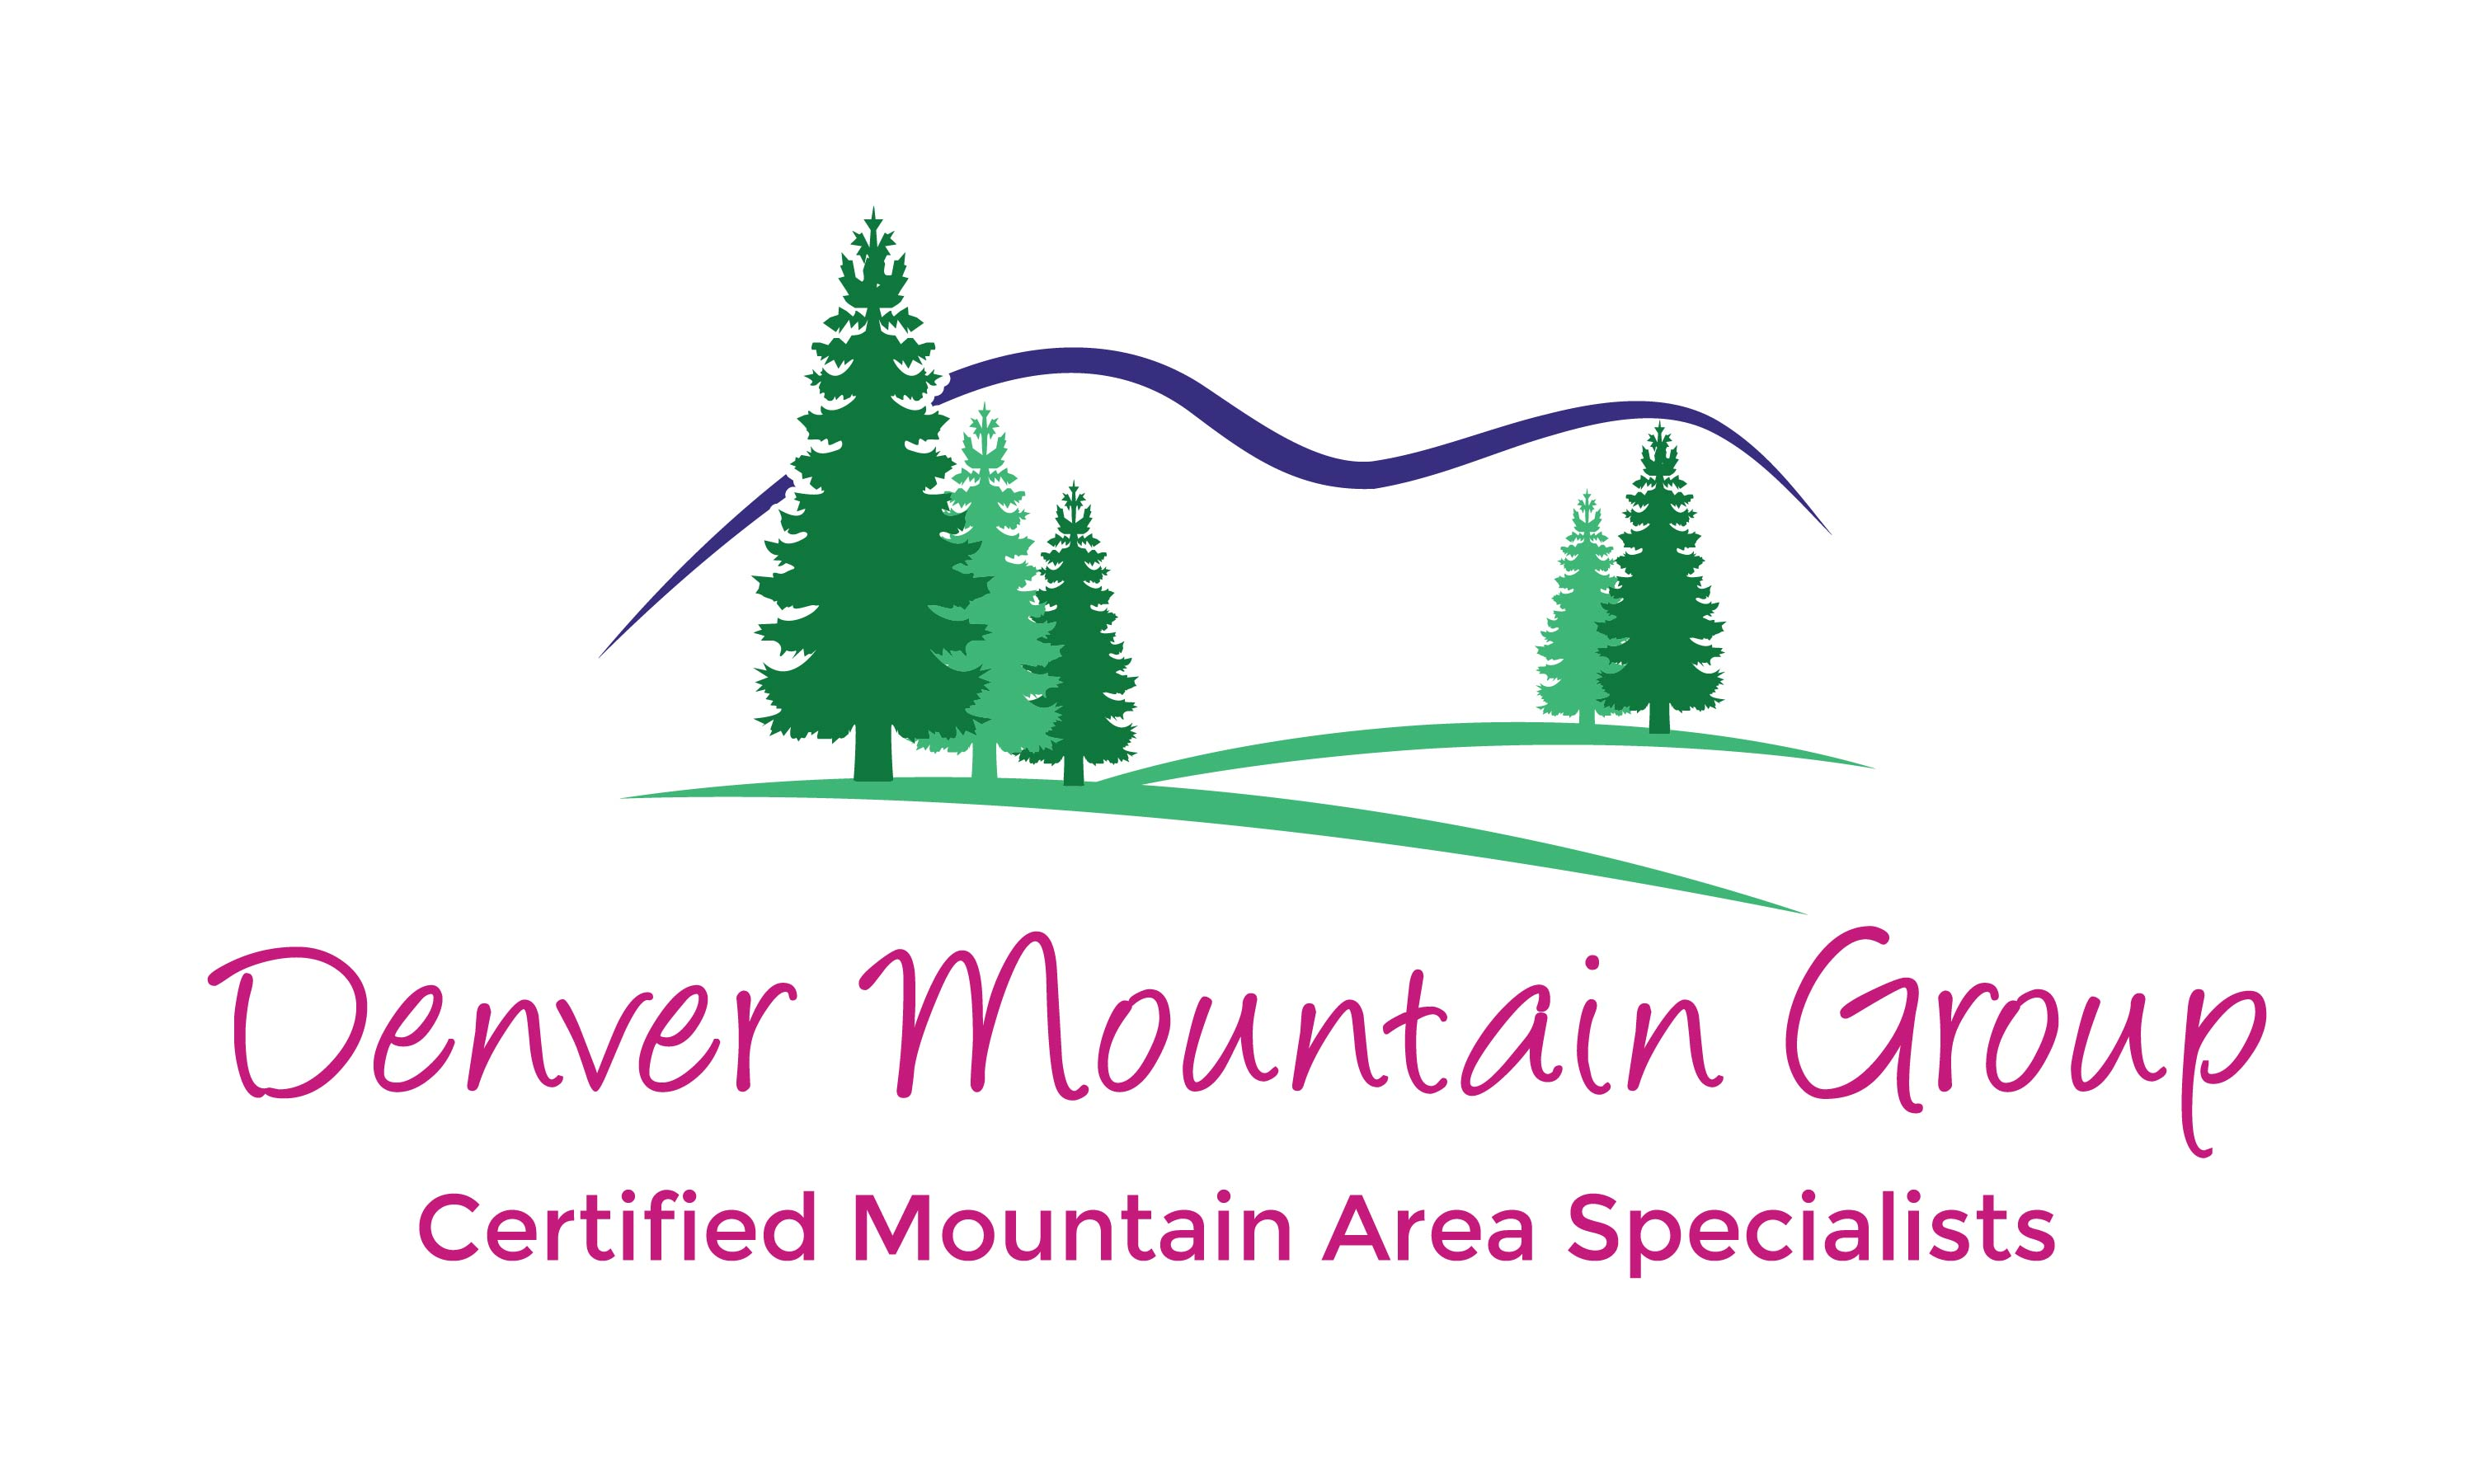 Denver Mountain Group